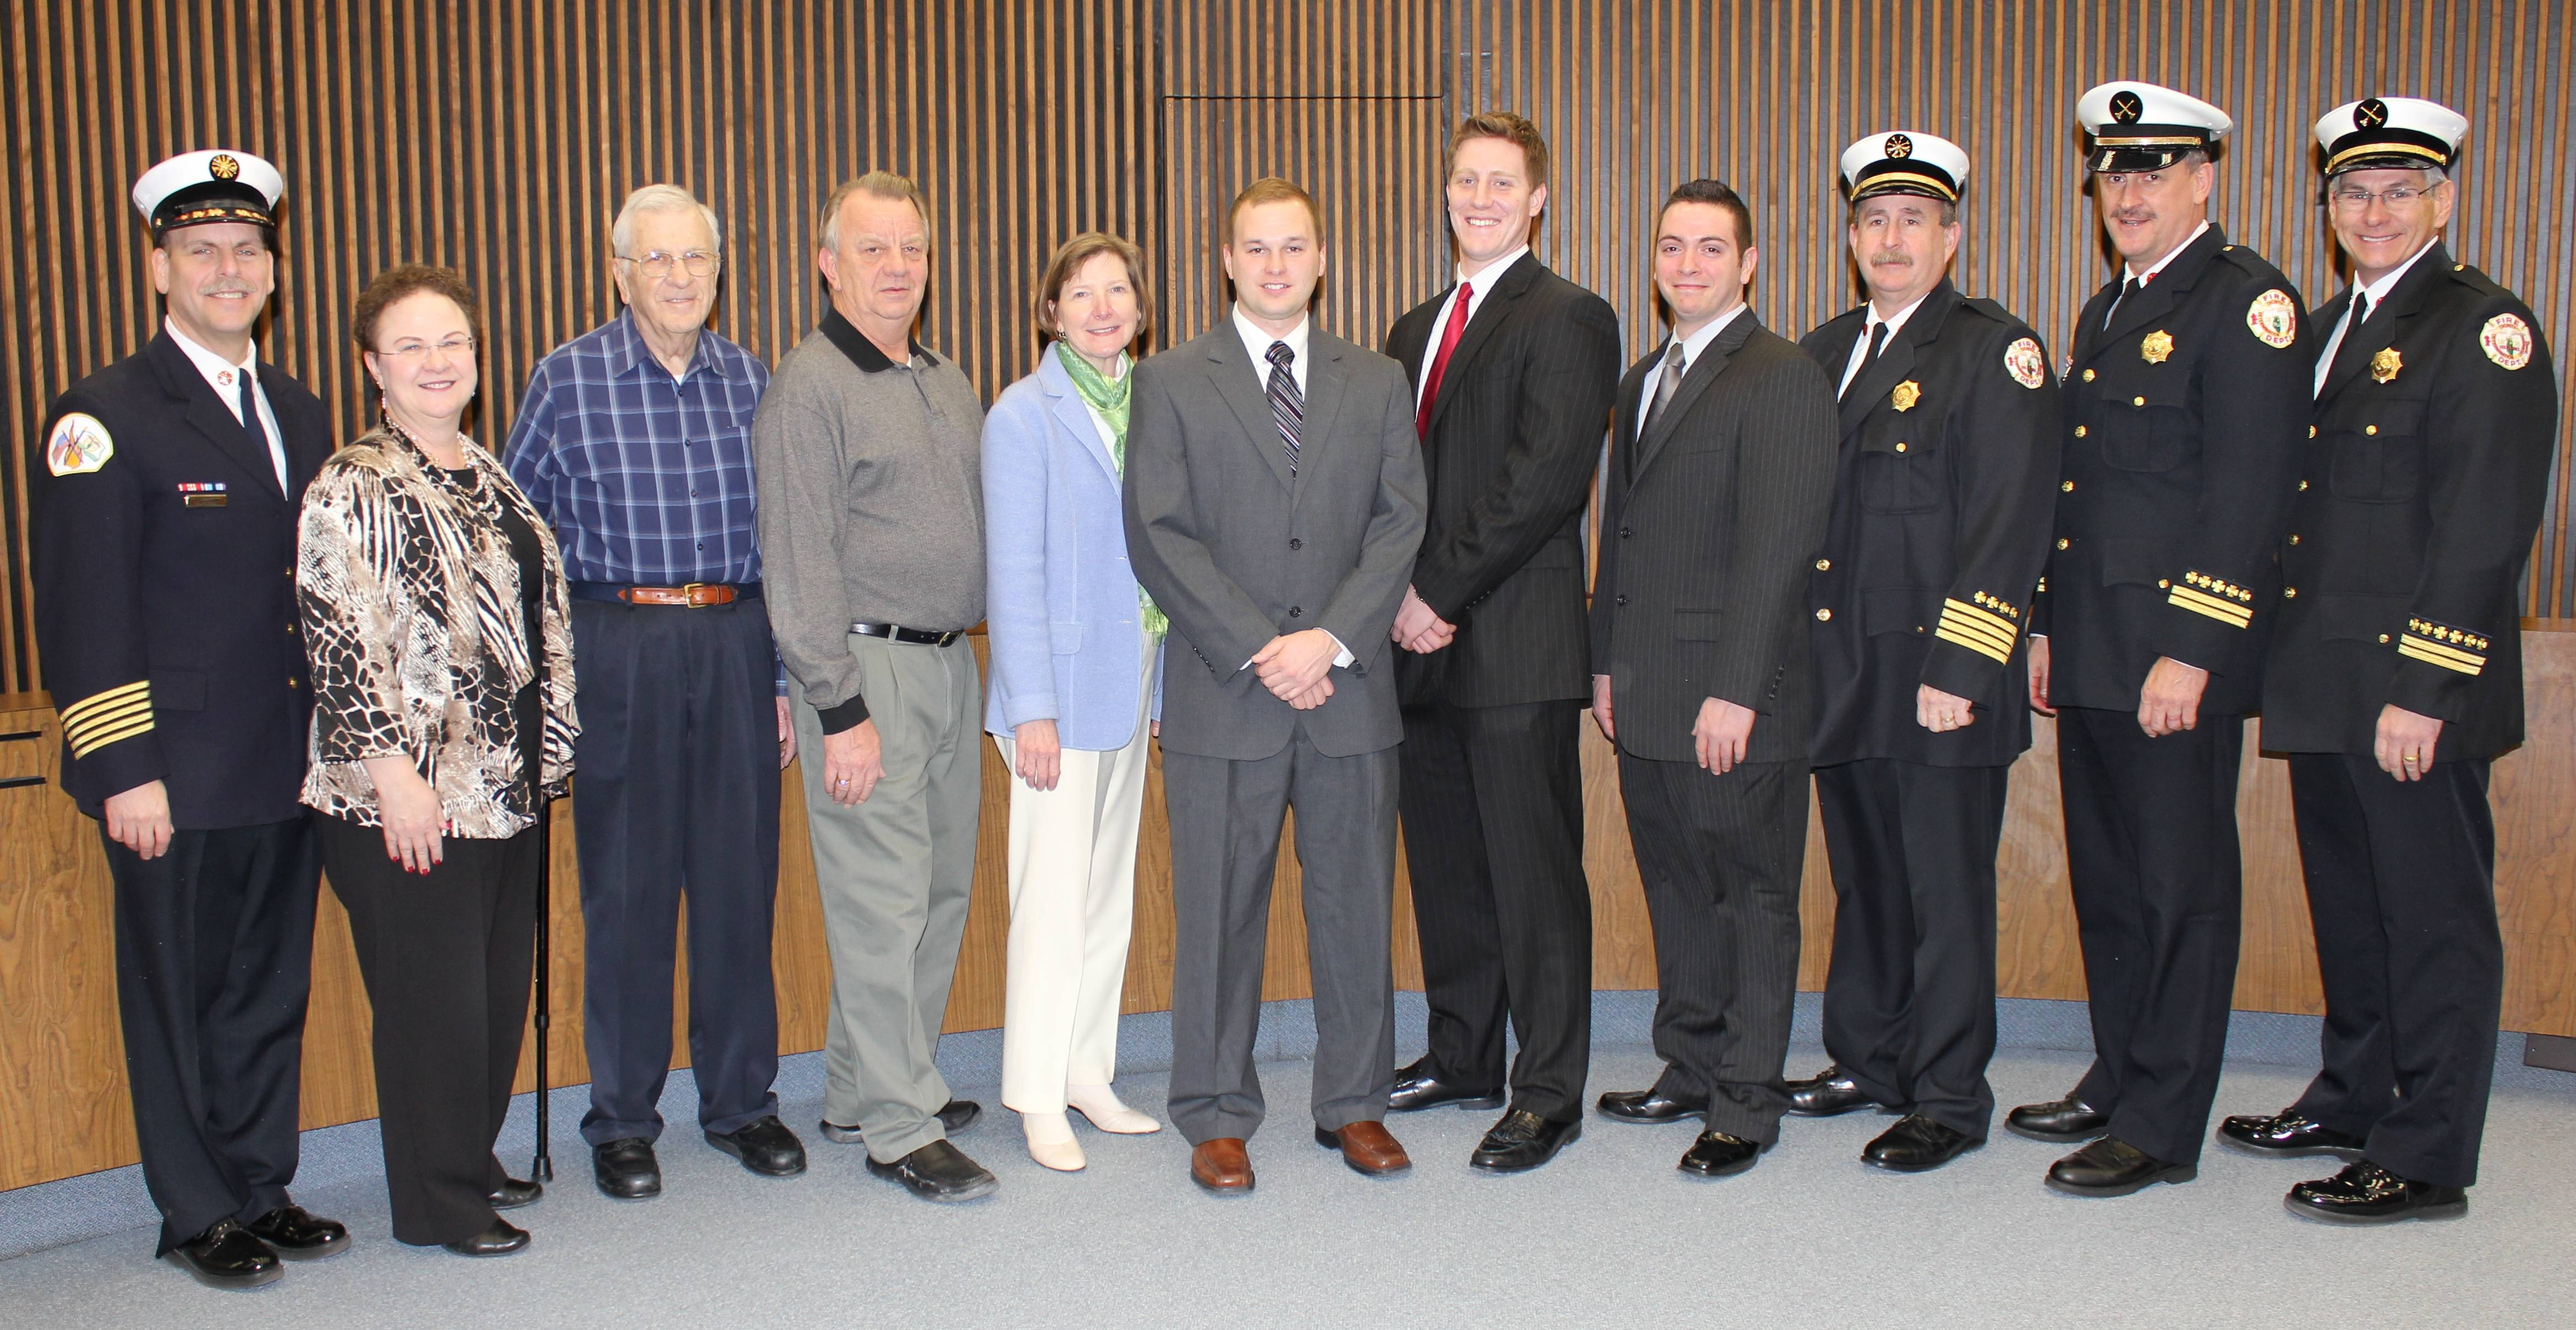 (pictured left to right) Fire Chief Alan Wax, City Clerk Gloria Ludwig, Board of Fire & Police Commissioners Chairman Arthur Lukowicz, Board of Fire & Police Commissioner Michael Albrecht, Board of Fire & Police Commissioner Debra Lester, Firefighter/Paramedic Candidate Patrick Tennant, Firefighter/Paramedic Candidate Daniel Garhan, Firefighter/Paramedic Candidate Edward Wilson, Deputy Fire Chief Randy Trost, Fire Division Chief of Emergency Medical Services (EMS) Peter Dyer, and Fire Division Chief of Training Forest Reeder pose for a photograph after the swearing in ceremony.